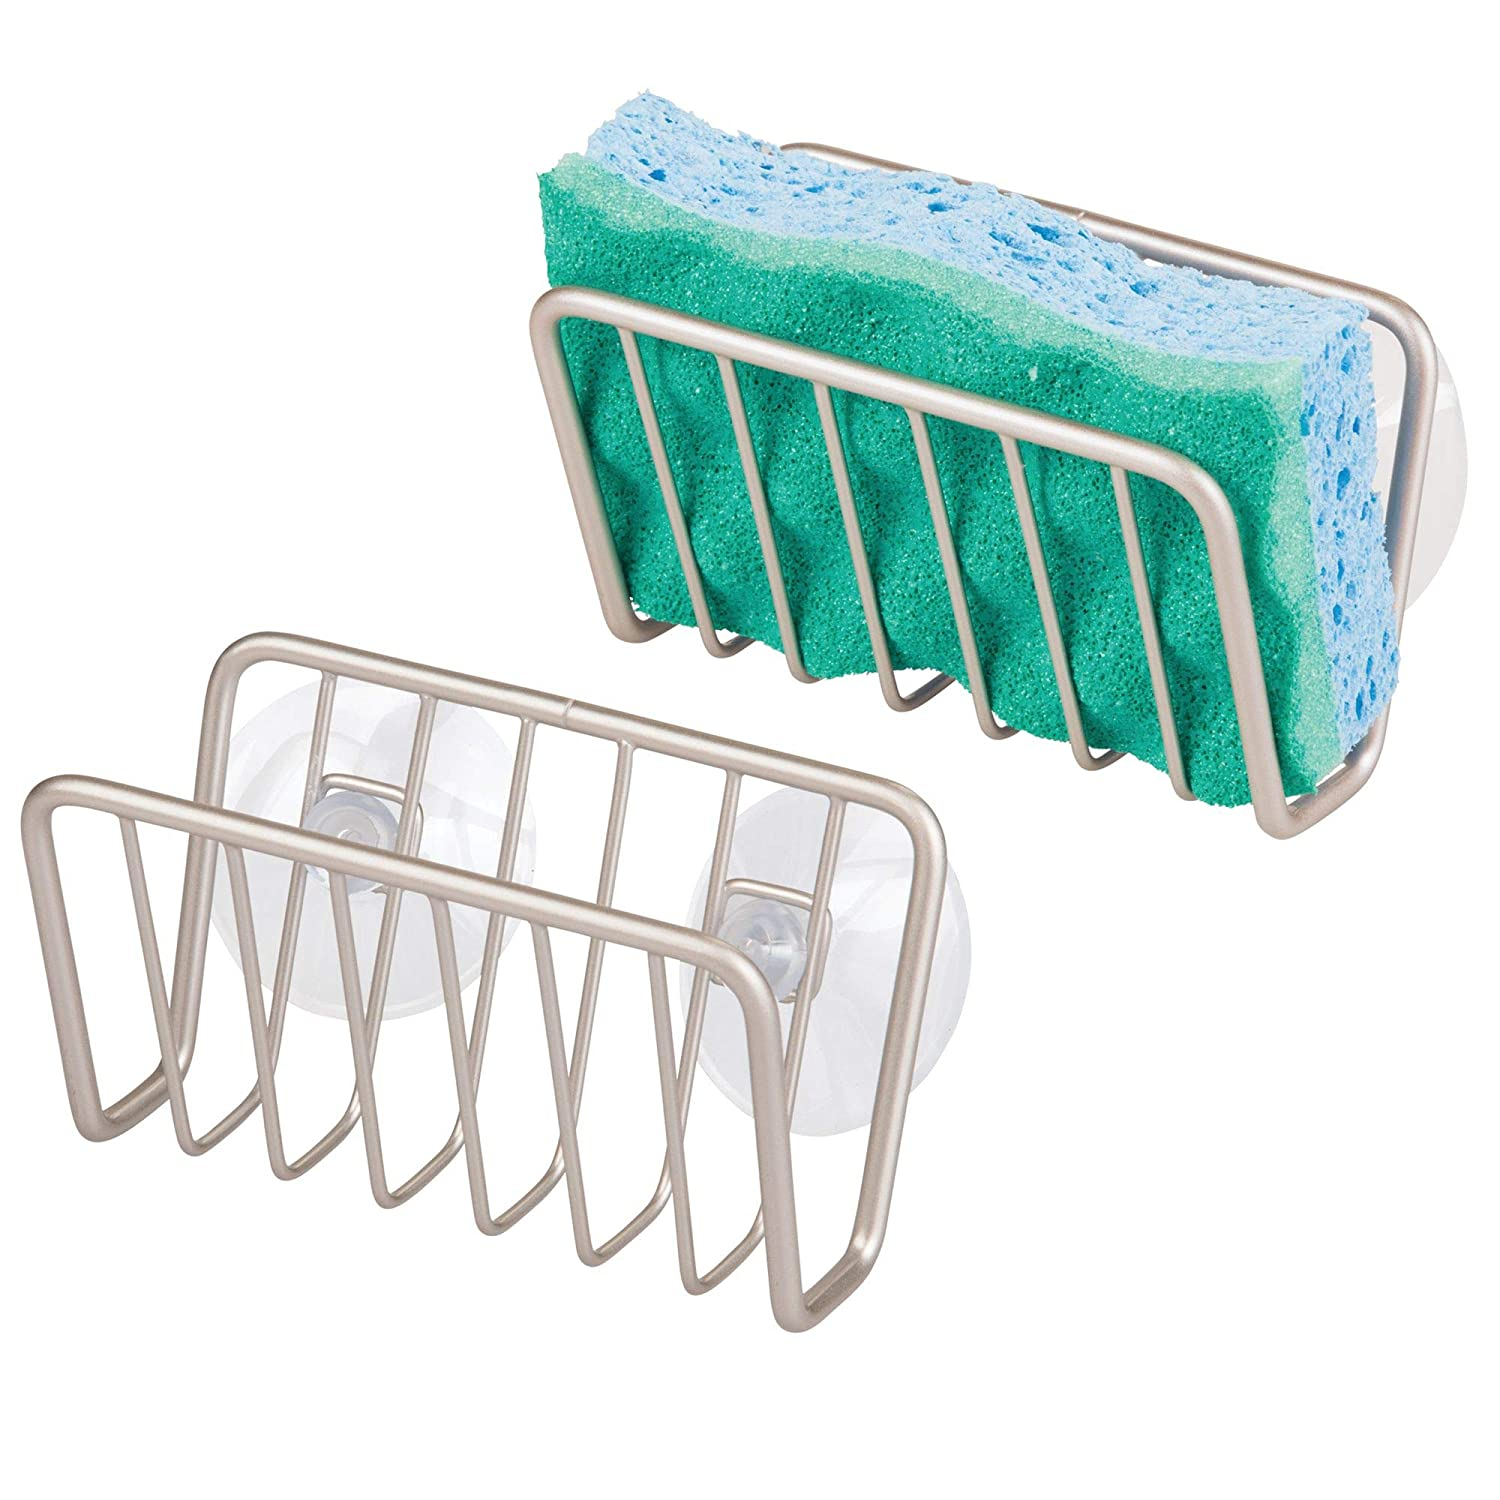 mDesign Kitchen Sink Organizer Caddy, Storage Holder for Sponges, Soaps, Scrubbers - Quick Drying Wire Basket Design with Strong Suction Cups - Pack of 2, Satin MetroDecor